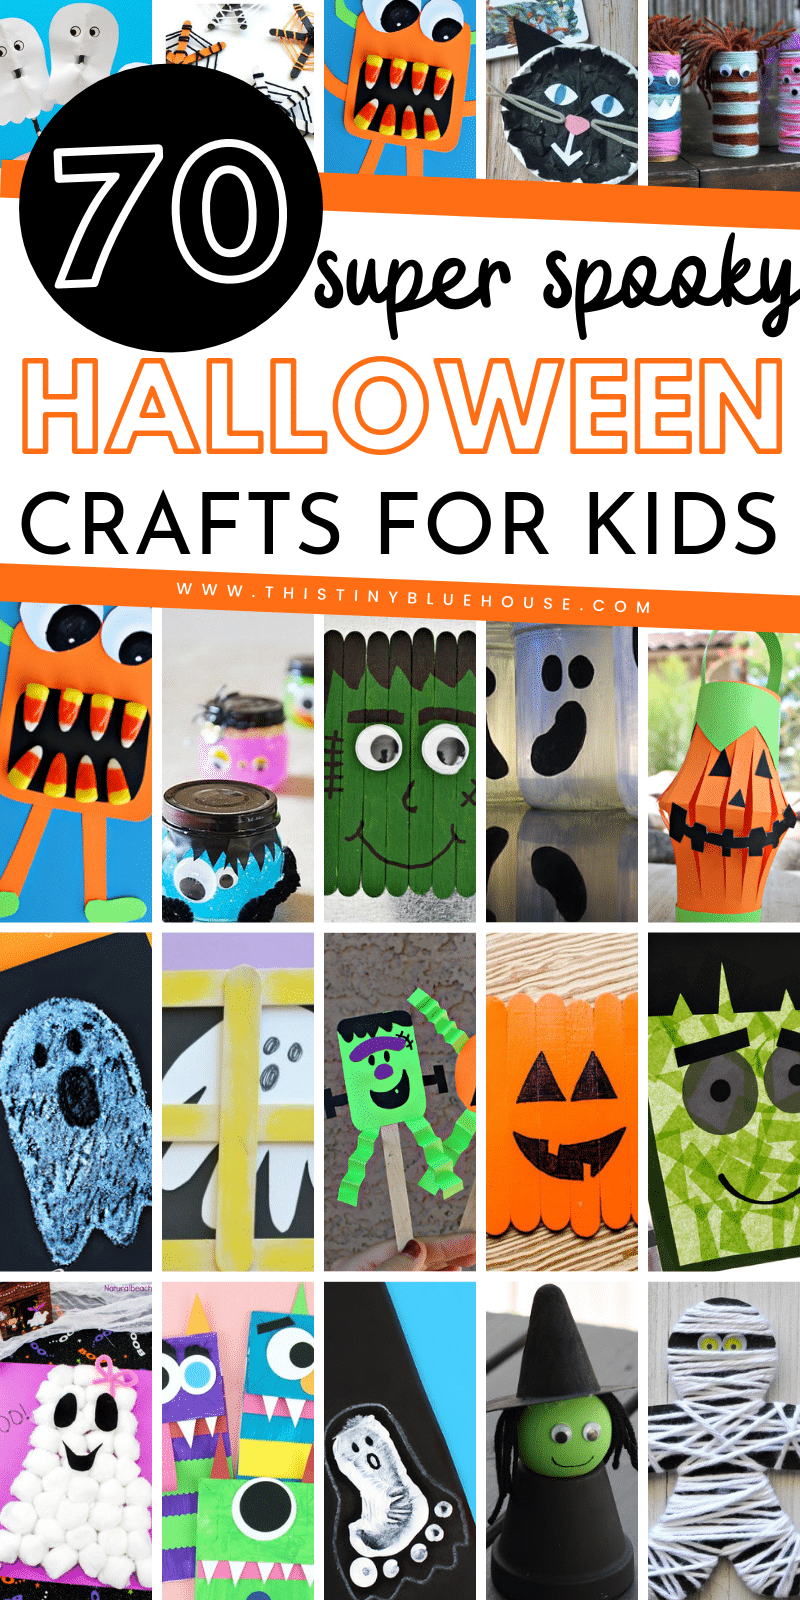 here are over 70 of the best cute and spooky Halloweencrafts for kids. From pumpkins to ghosts and witches these Halloween crafts for kids are guaranteed to get your kids excited about Halloween. #halloweencrafts #halloweencraftsfortoddlers #halloweencraftsforkidstomake #halloweencraftsdiy #halloweencraftseasy #halloweencraftskindergarten #halloweencraftsforchildren